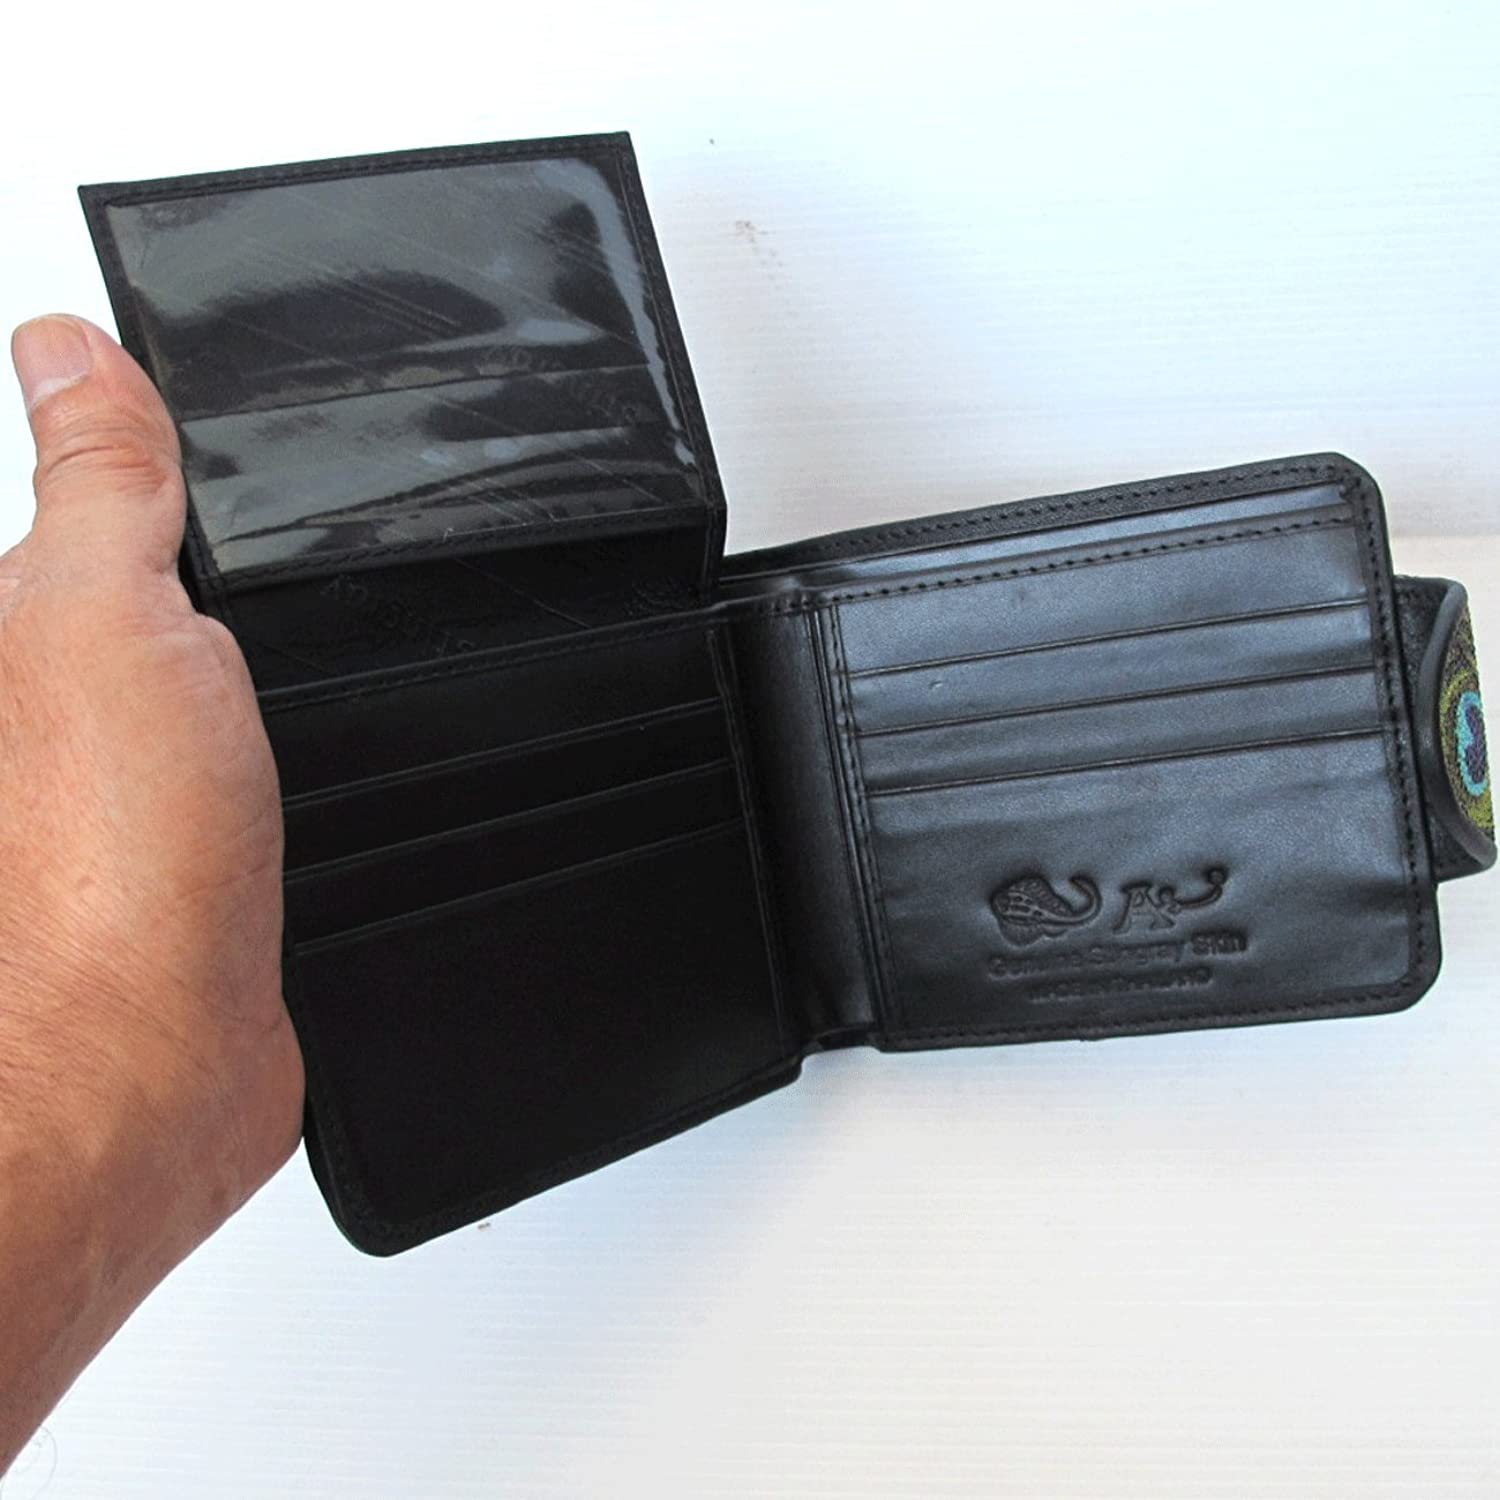 """HelloHappiness"" FASHIONABLE !! 100 % GENUINE STINGRAY LEATHER BIFOLD WALLET WITH PEACOCK (UNISEX) STANDARD US SIZE = CLOSED 4.2 X 3.5 INCHEN (WITH CLOSE SNAP)"